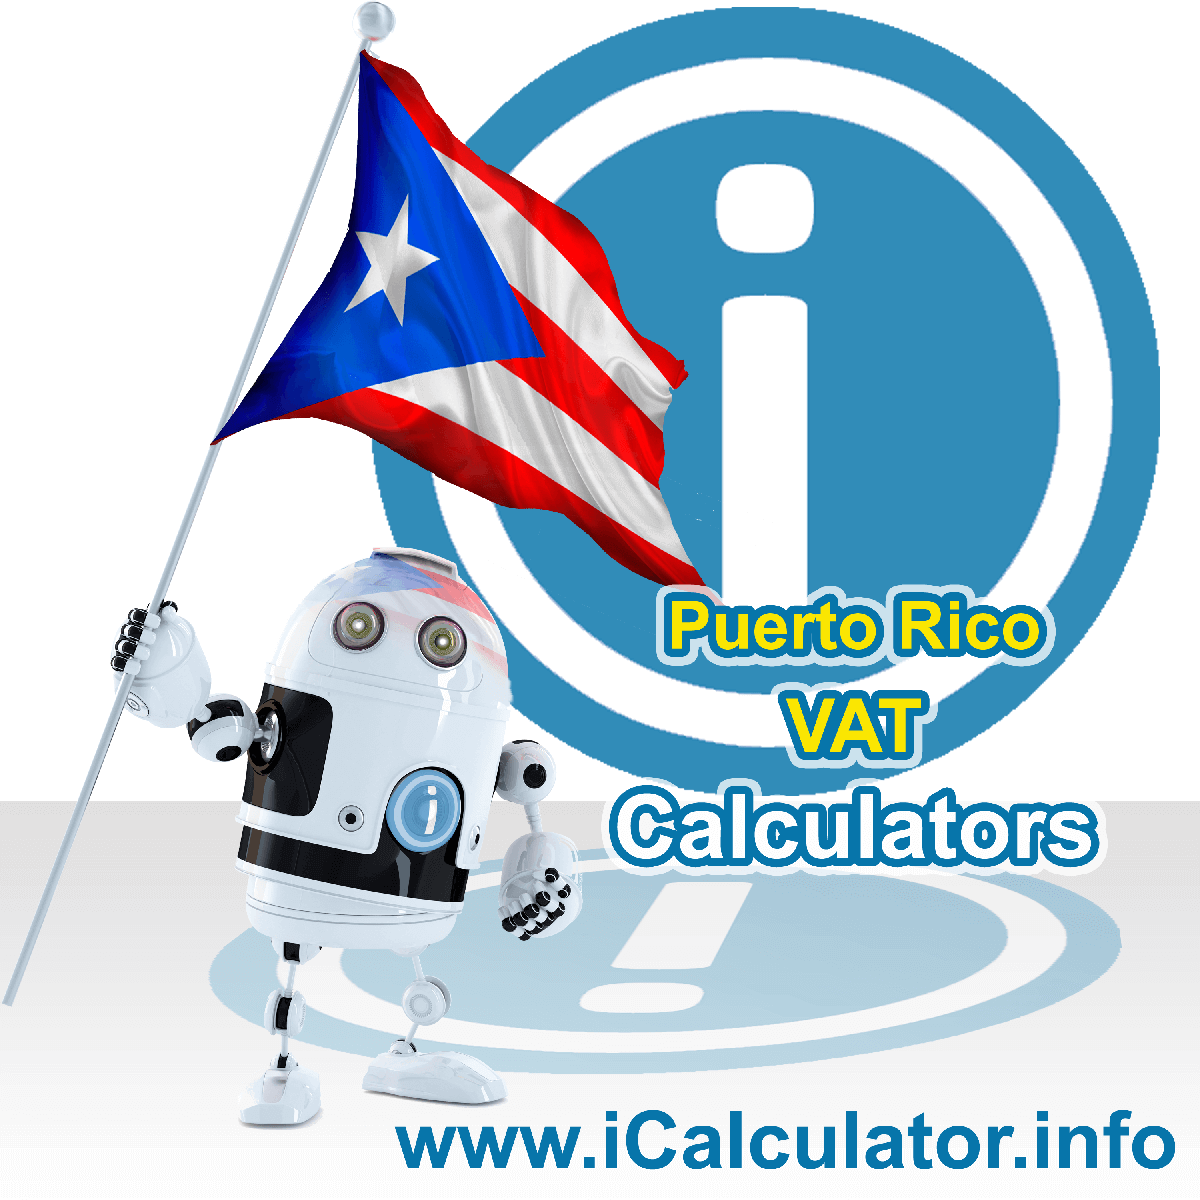 Puerto Rico VAT Calculator. This image shows the Puerto Rico flag and information relating to the VAT formula used for calculating Value Added Tax in Puerto Rico using the Puerto Rico VAT Calculator in 2020